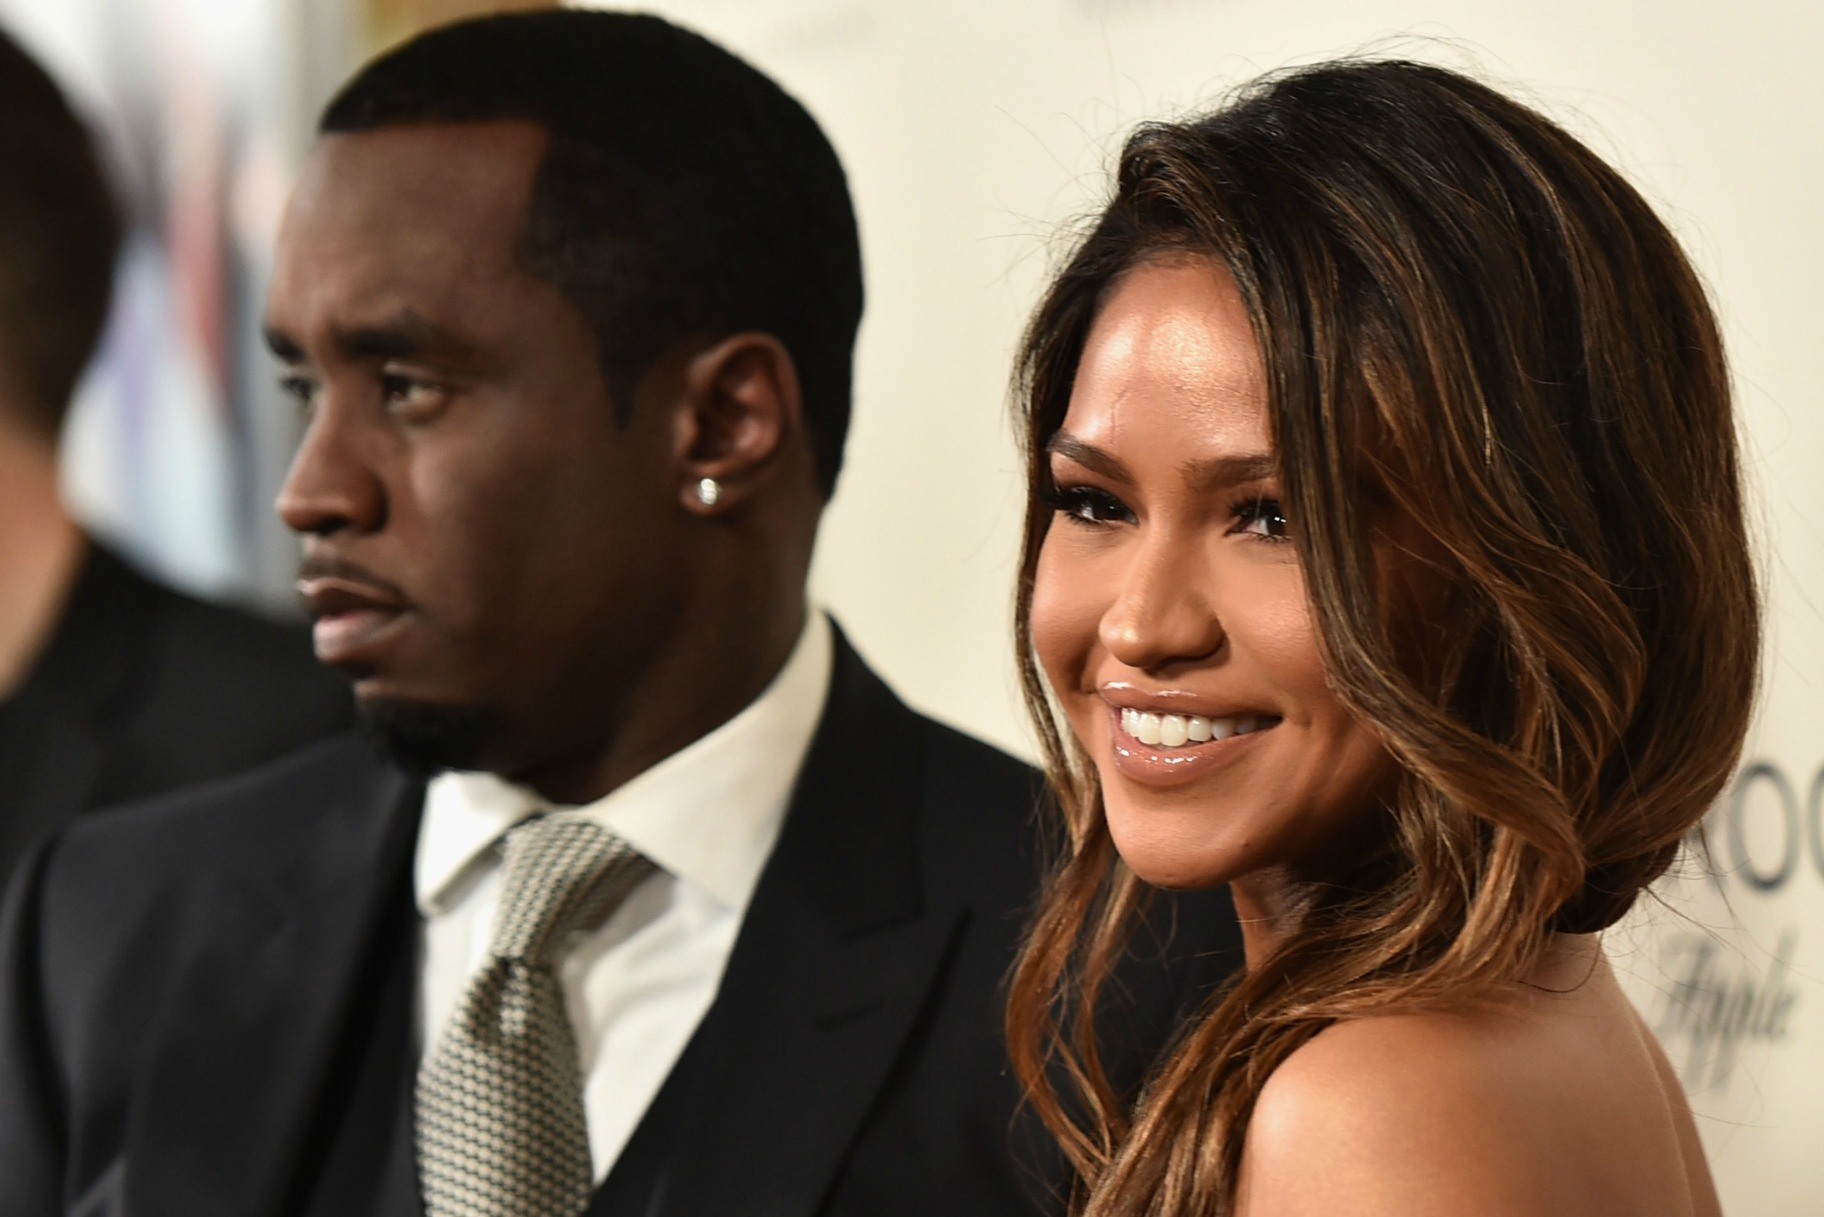 Diddy Allegedly Feels Betrayed By Cassie - She Slept With The Trainer He Paid For